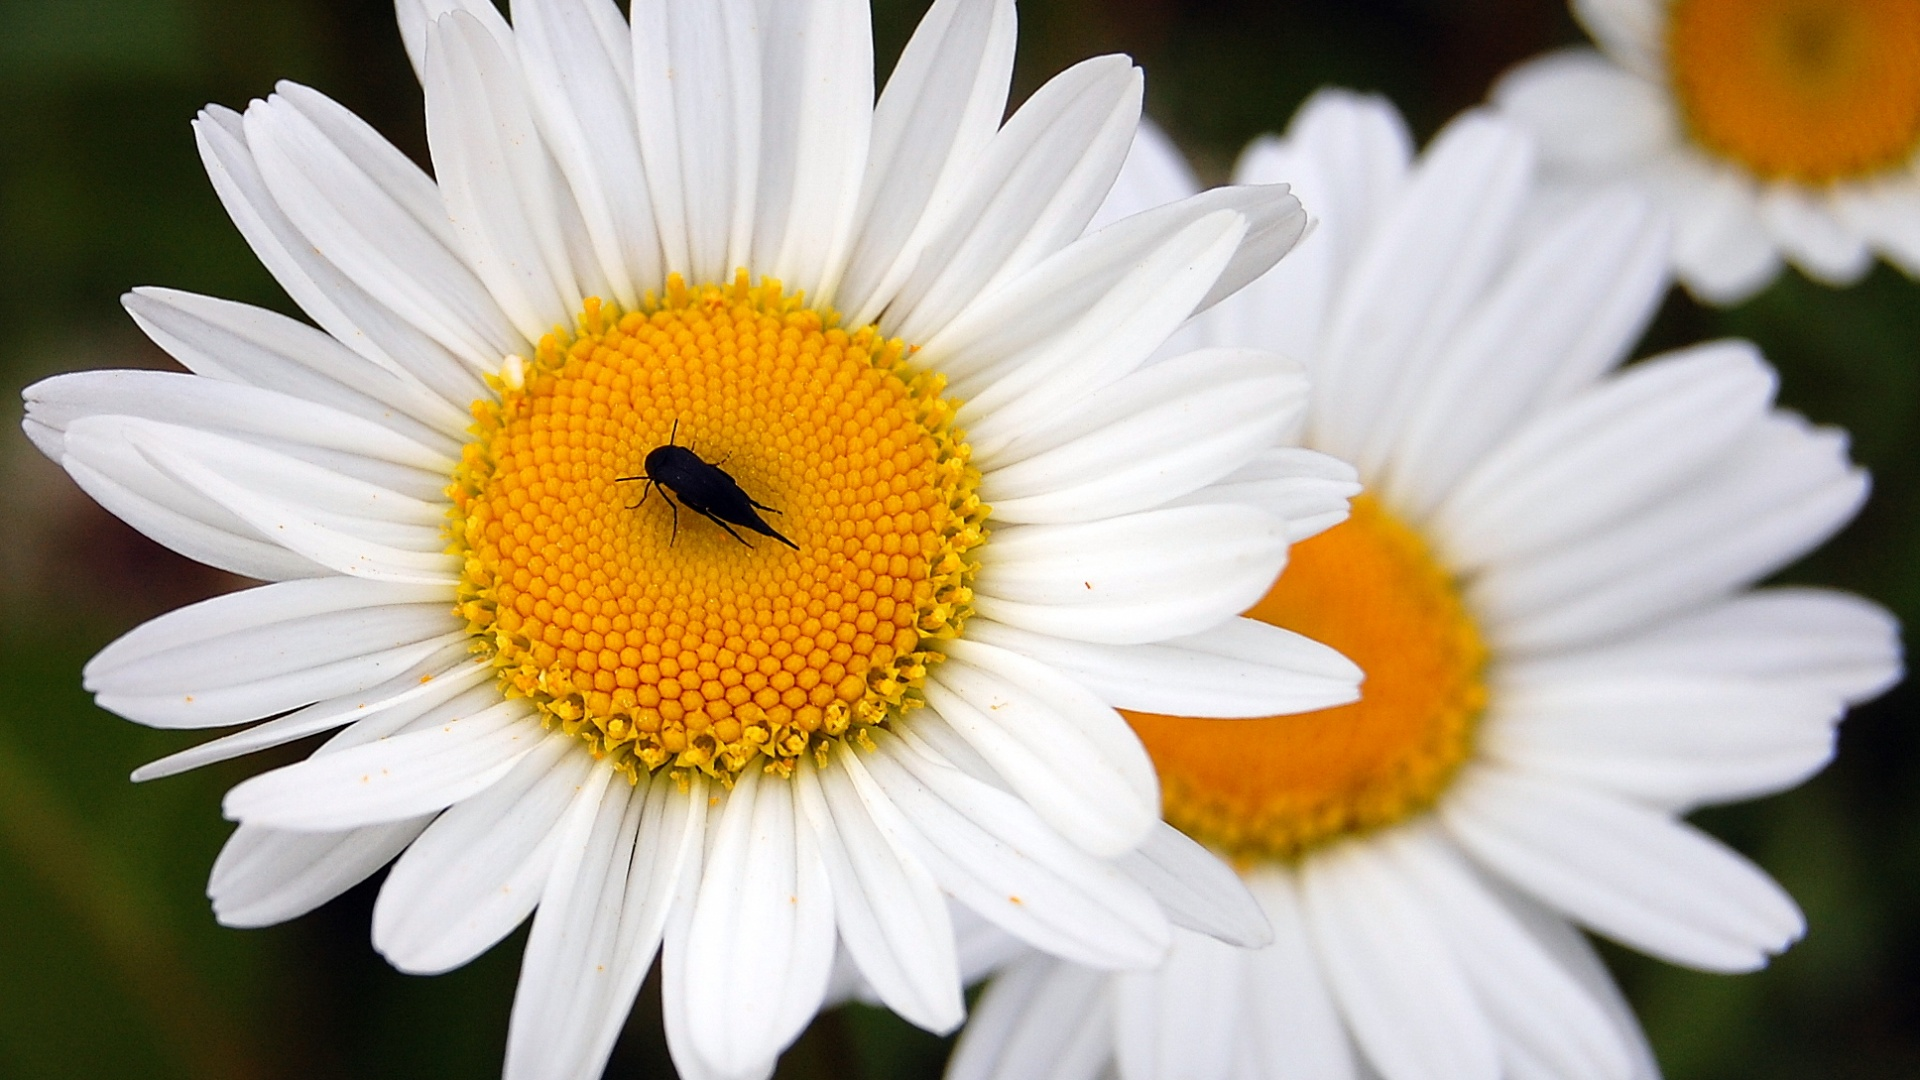 In the daisy wallpaper black beetle sits 1920x1080 Wallpapers 3d for 1920x1080